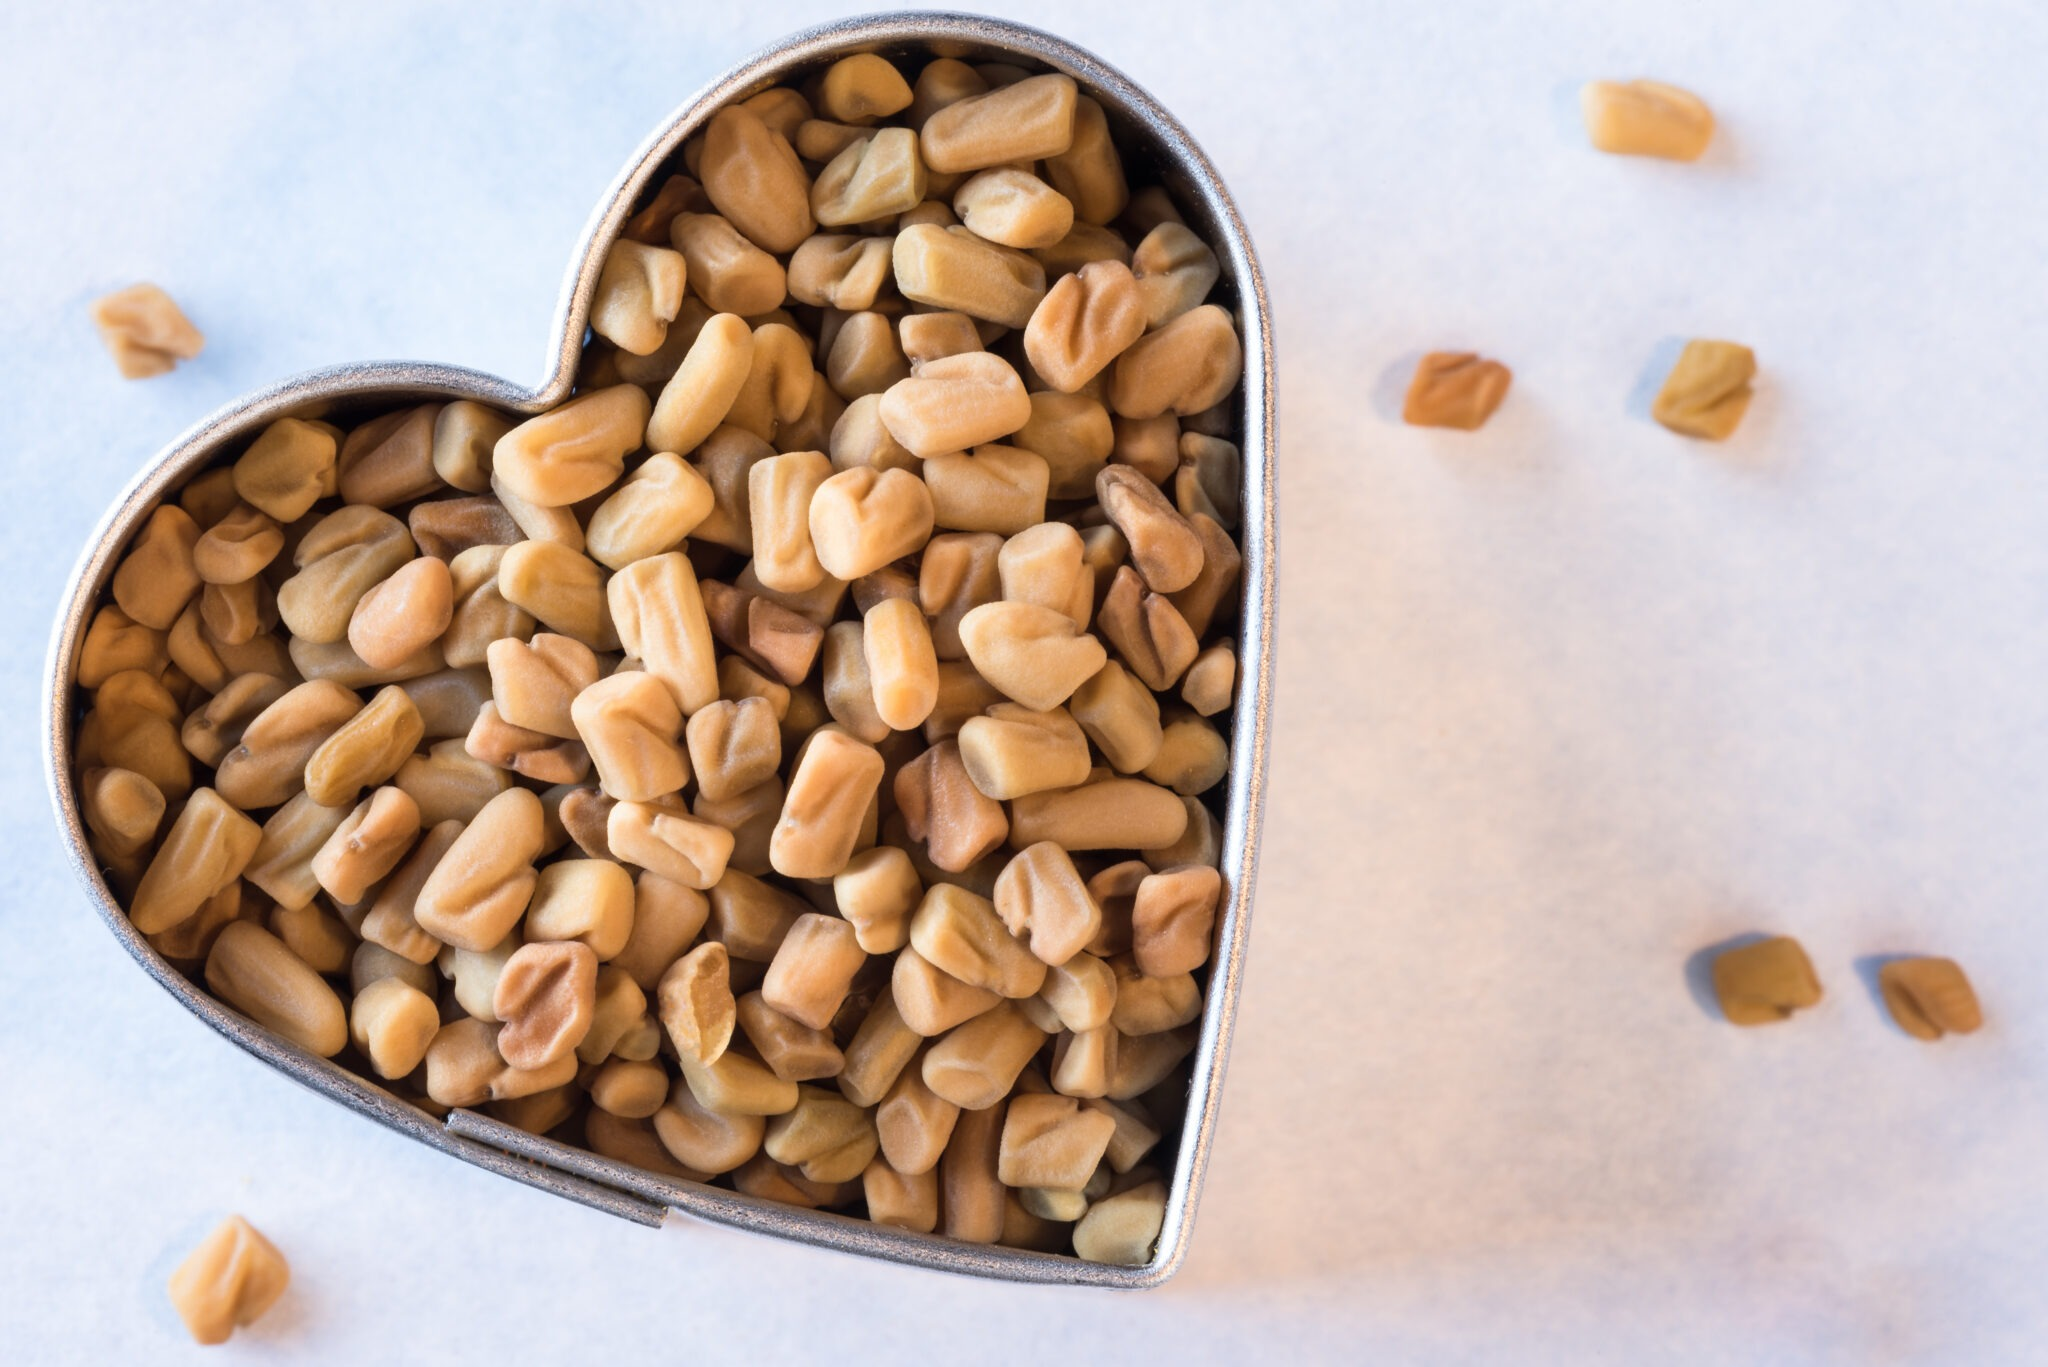 Fenugreek seeds benefits